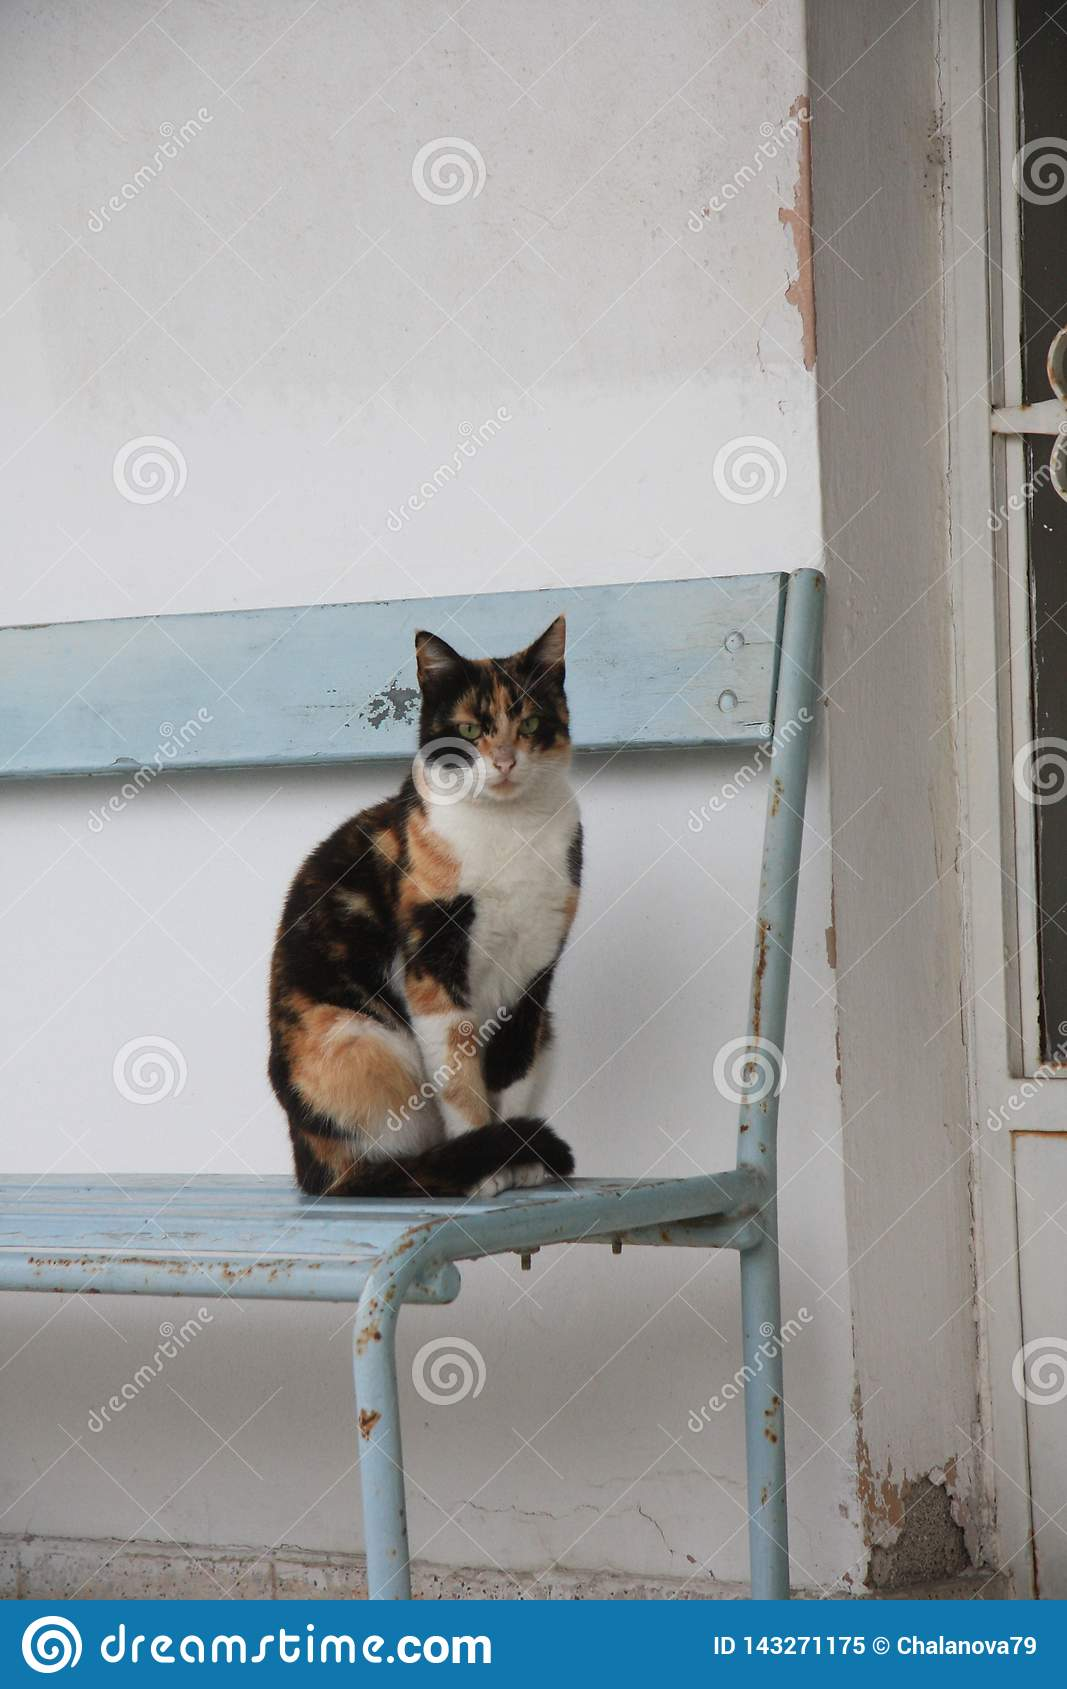 Cat standing on the chair outside the house